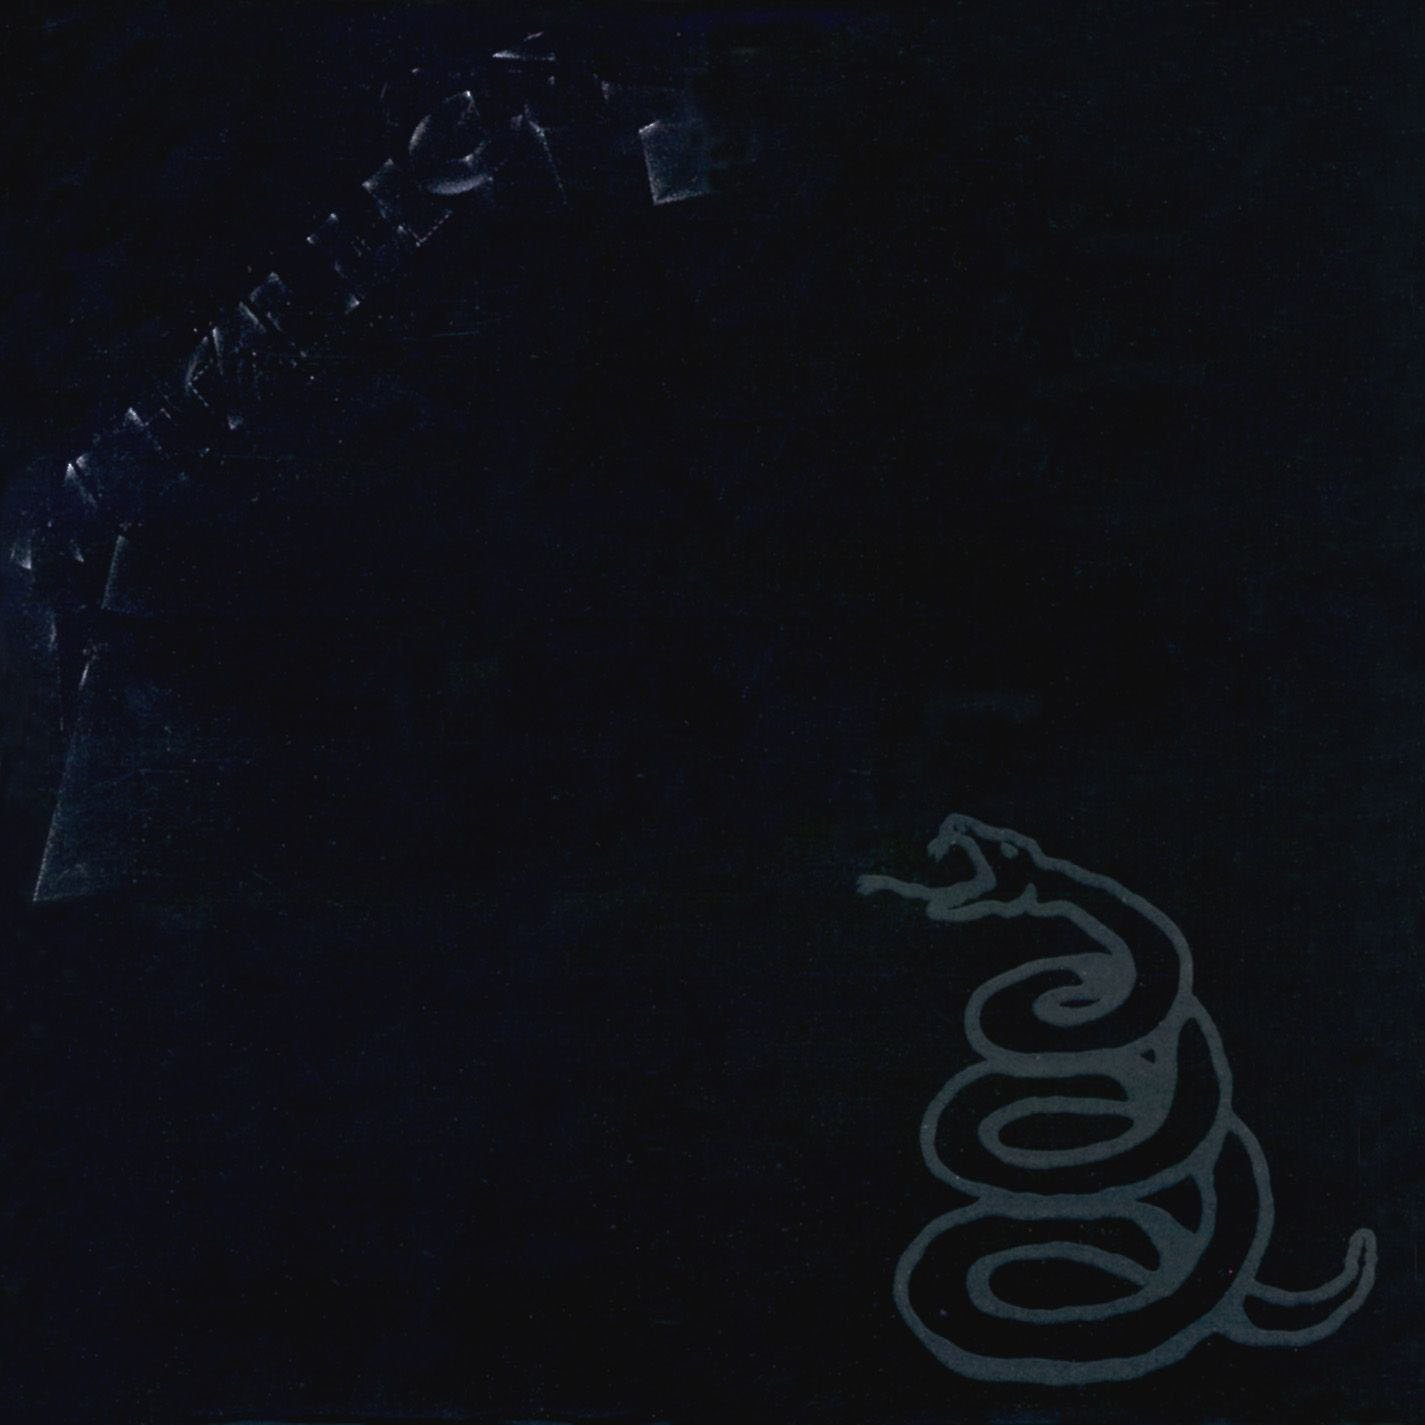 Metallica – Metallica (Black Album) [2xLP]